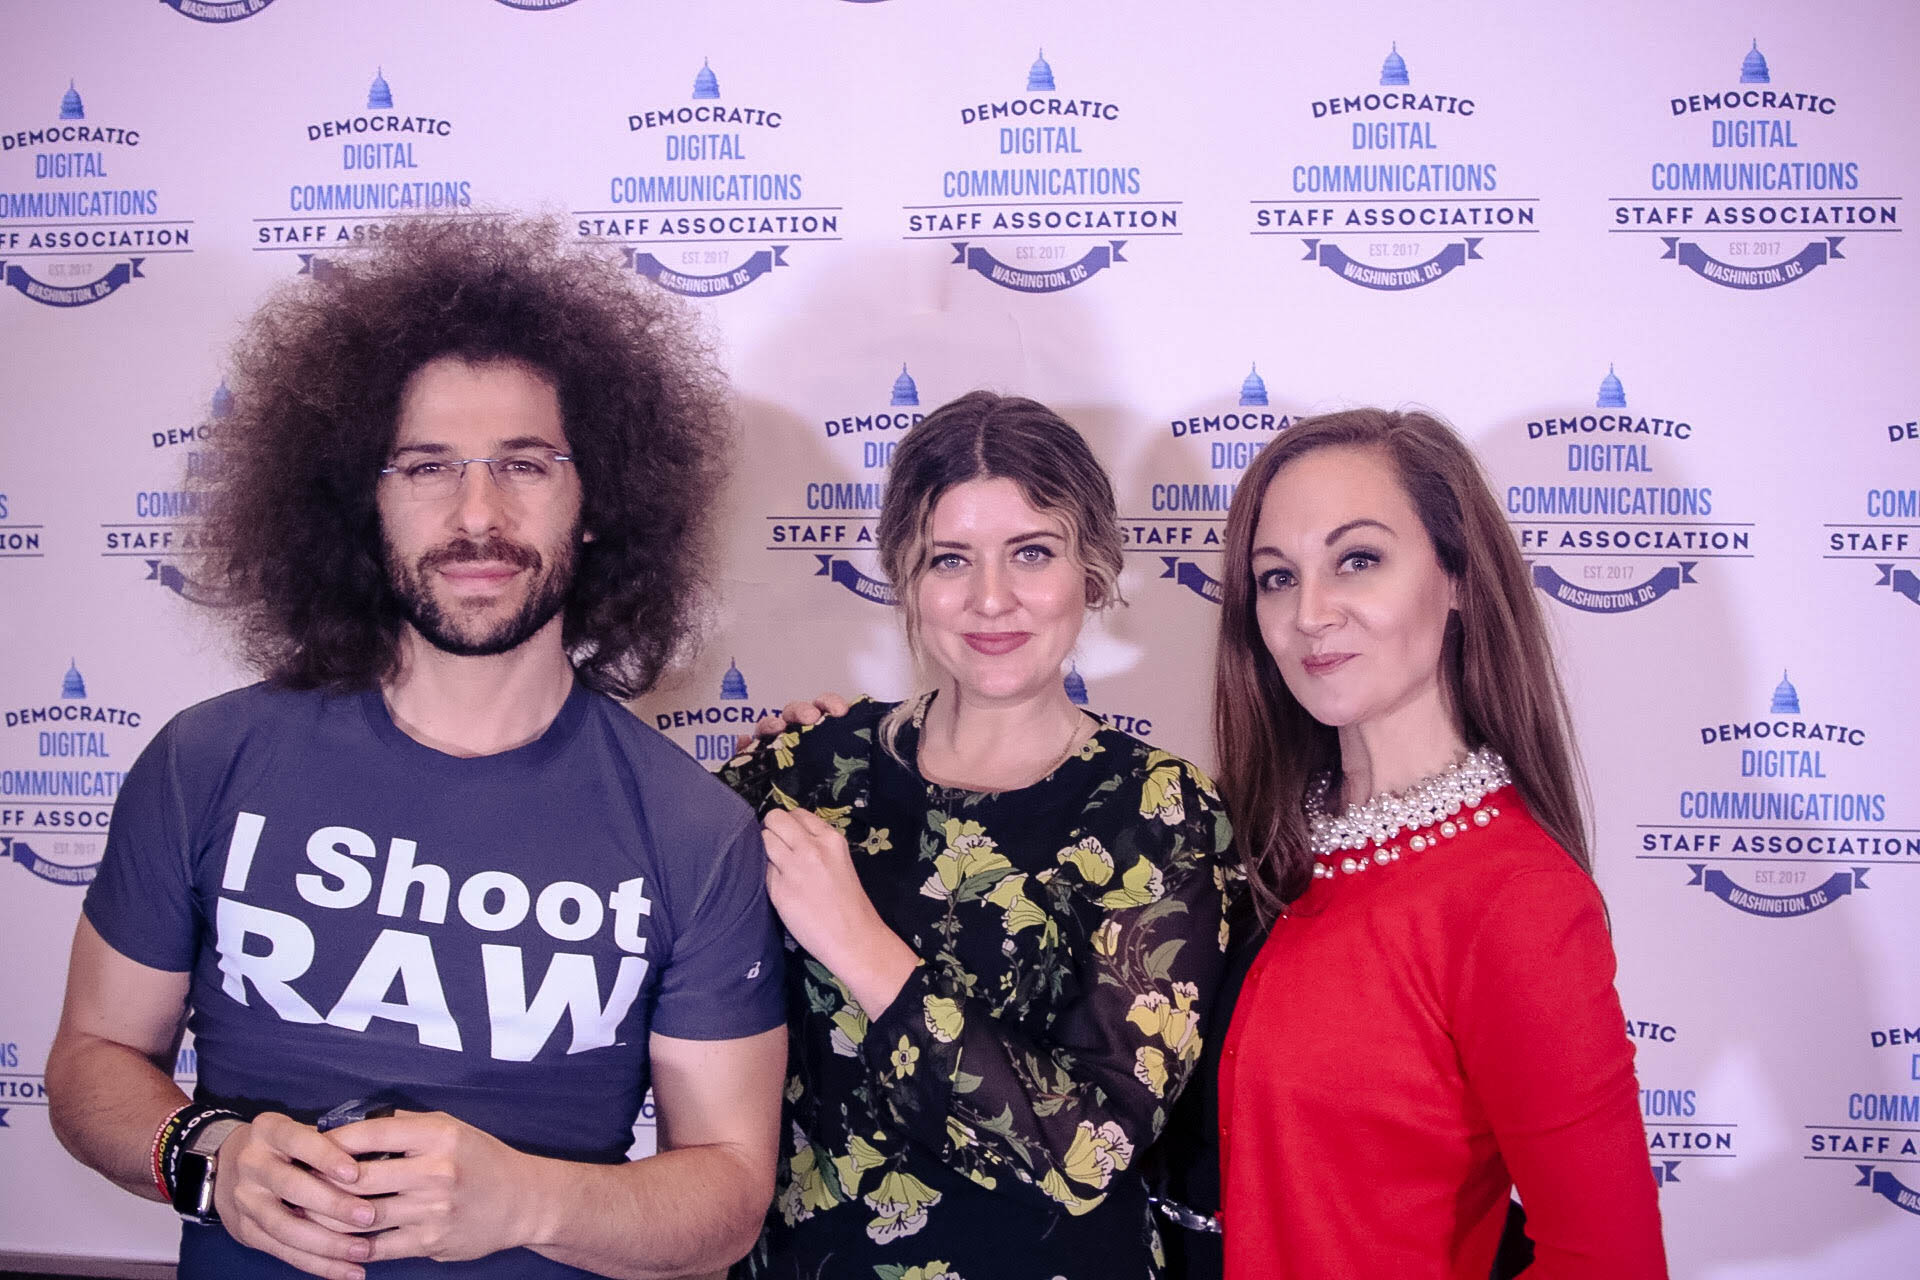 photographer Jared Polin, stylist Mary Elizabeth and staffer Jessica Presley. (Democratic Digital Communications Staff Association)